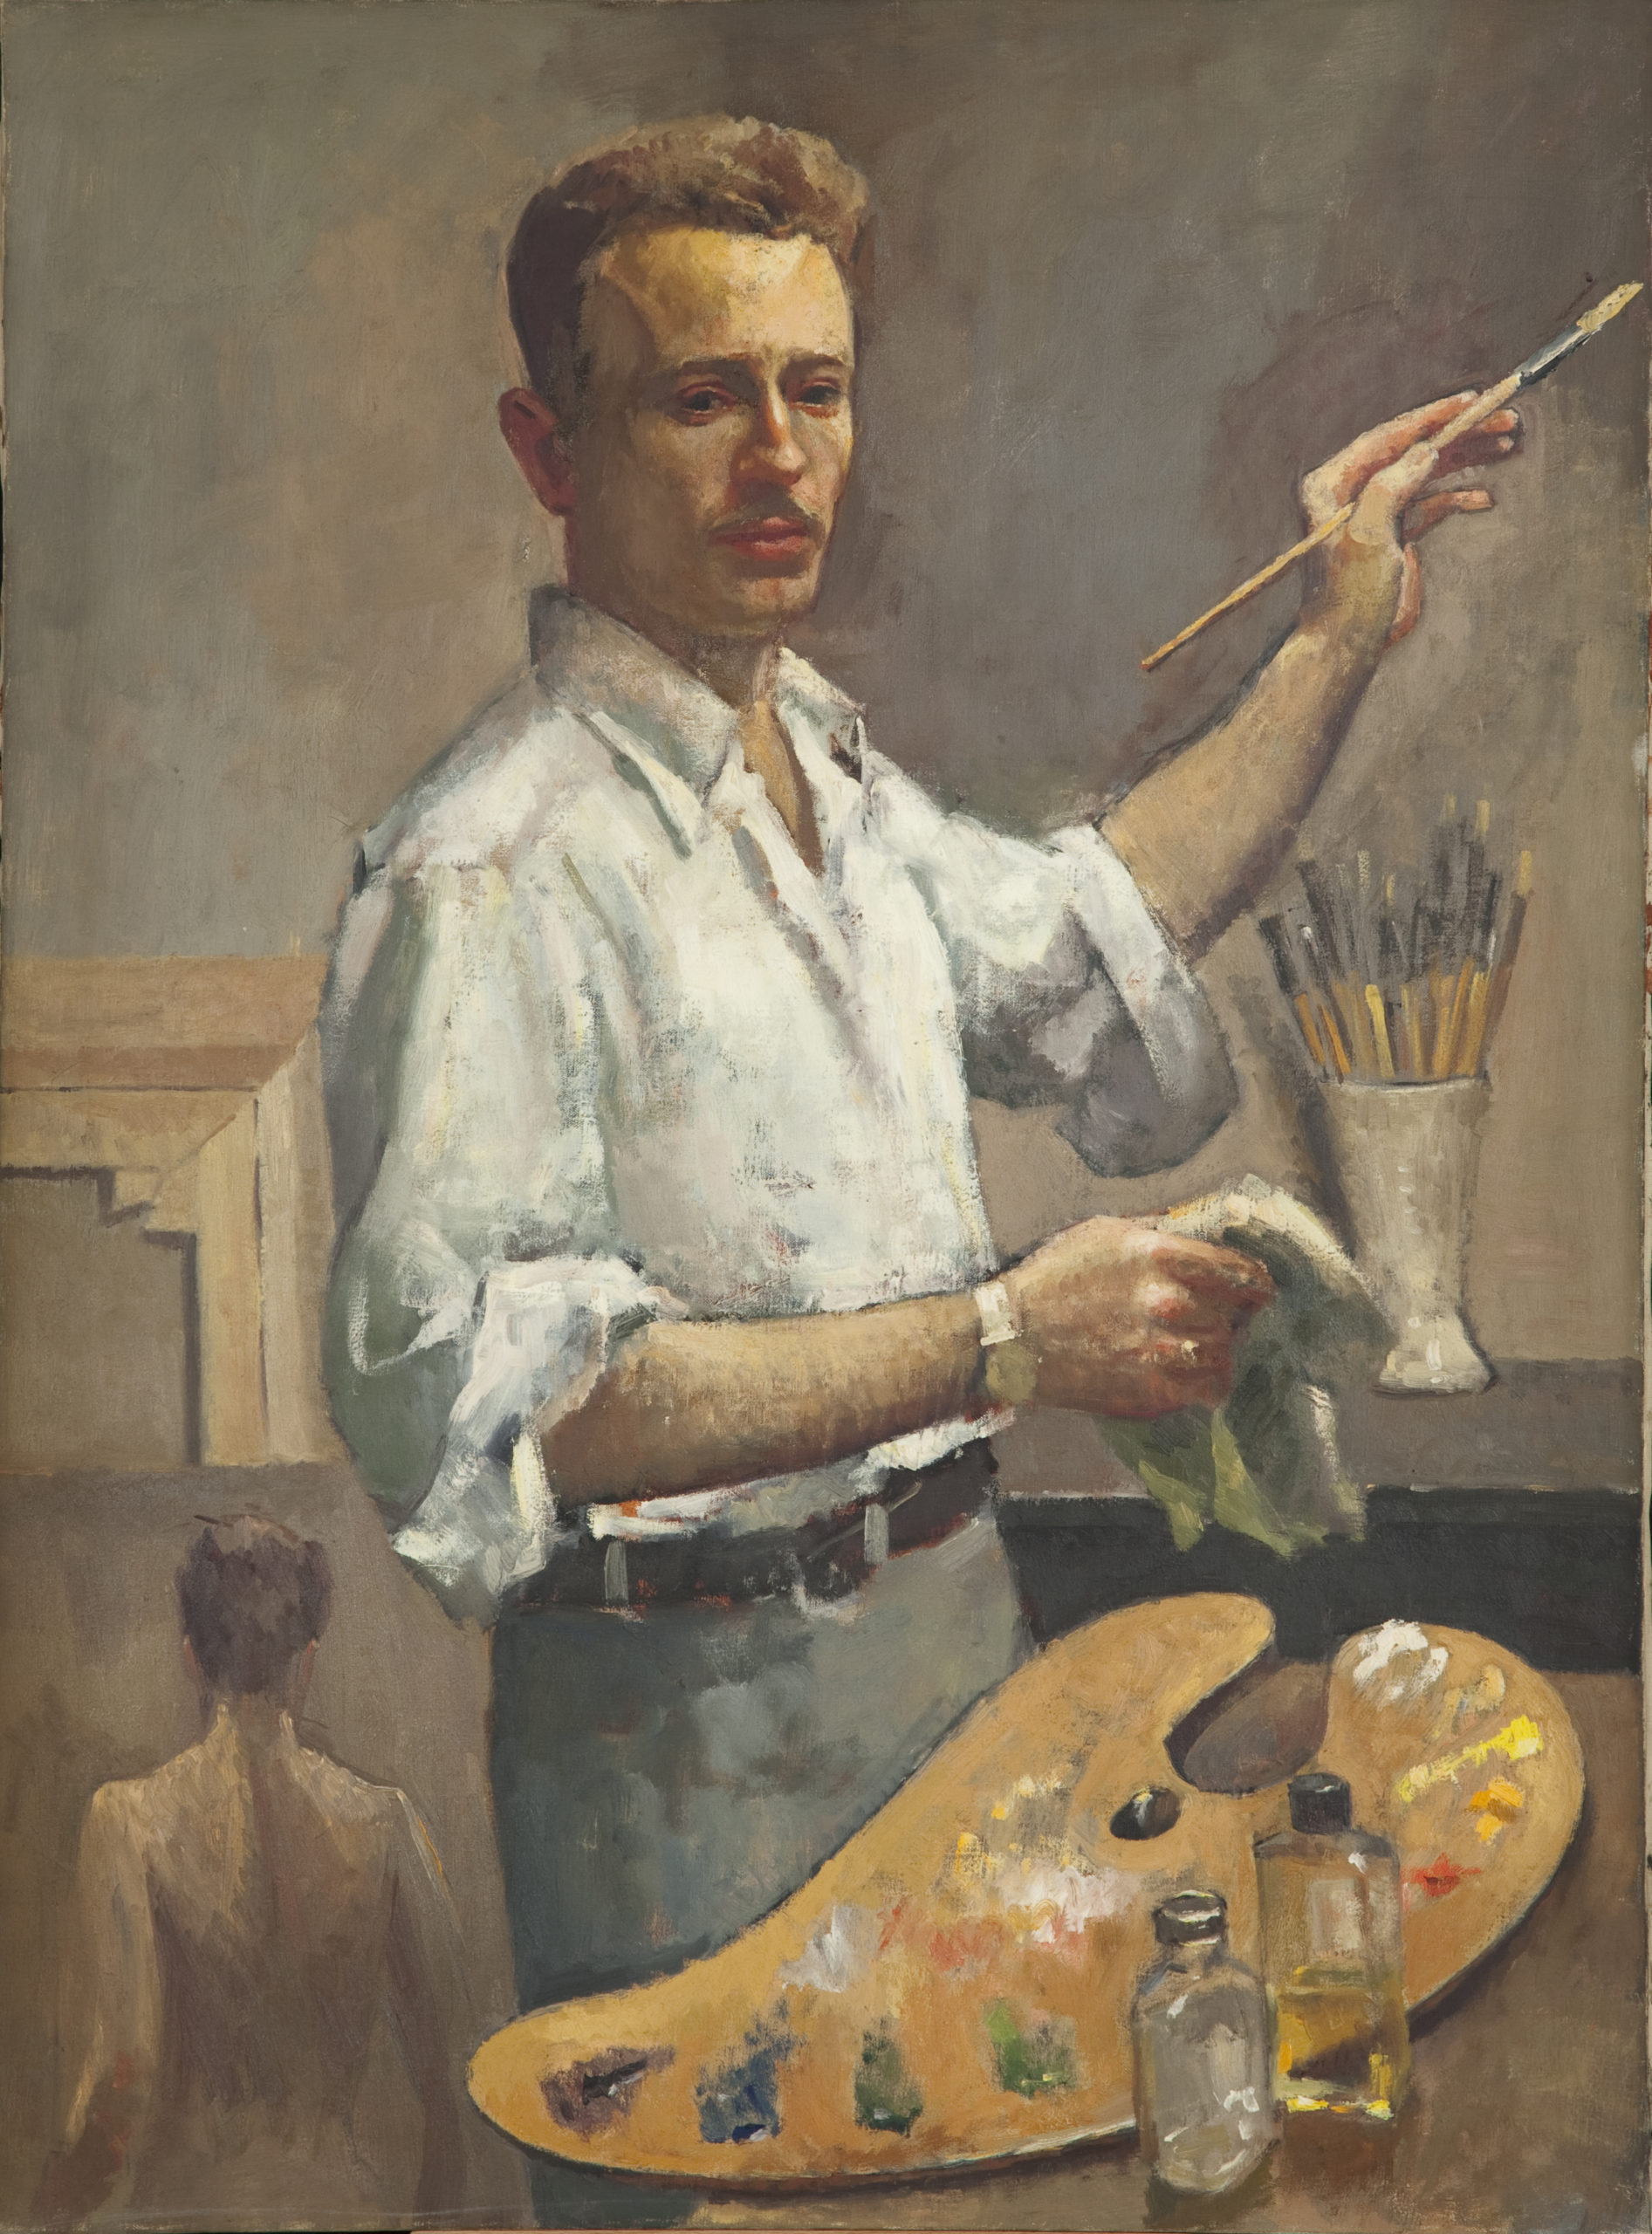 258 Itshak Holtz - Self Portrait 1951 - Oil on Canvas - 30 x 40.25 - No Frame